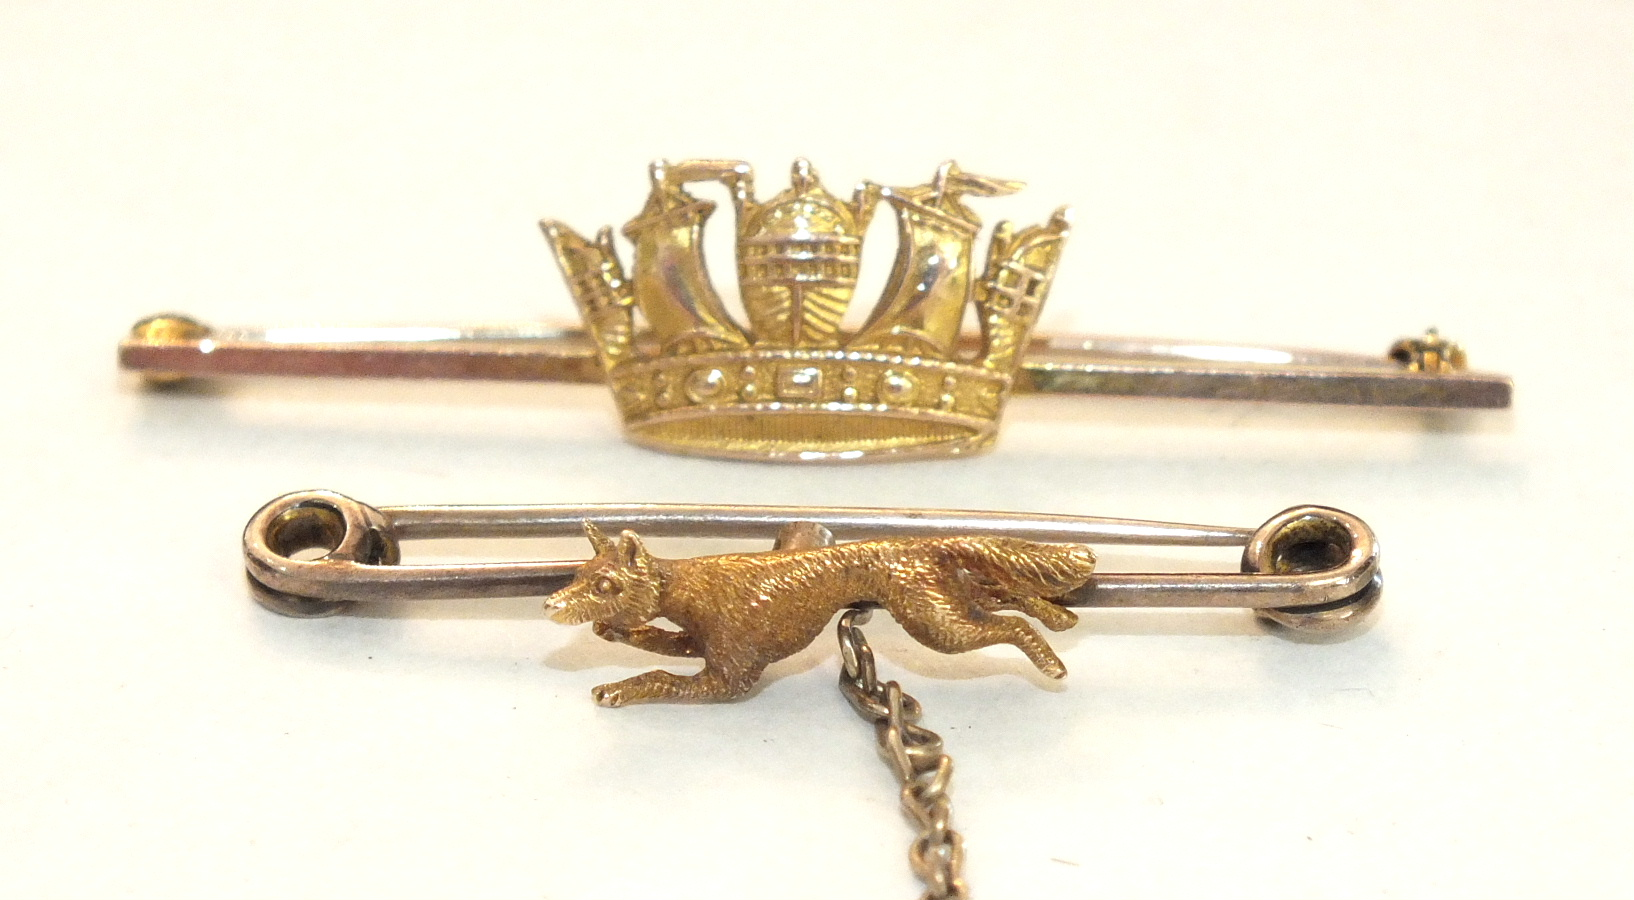 A small hunting brooch with a running fox, unmarked, 3.8cm long and a Naval crown sweetheart brooch,